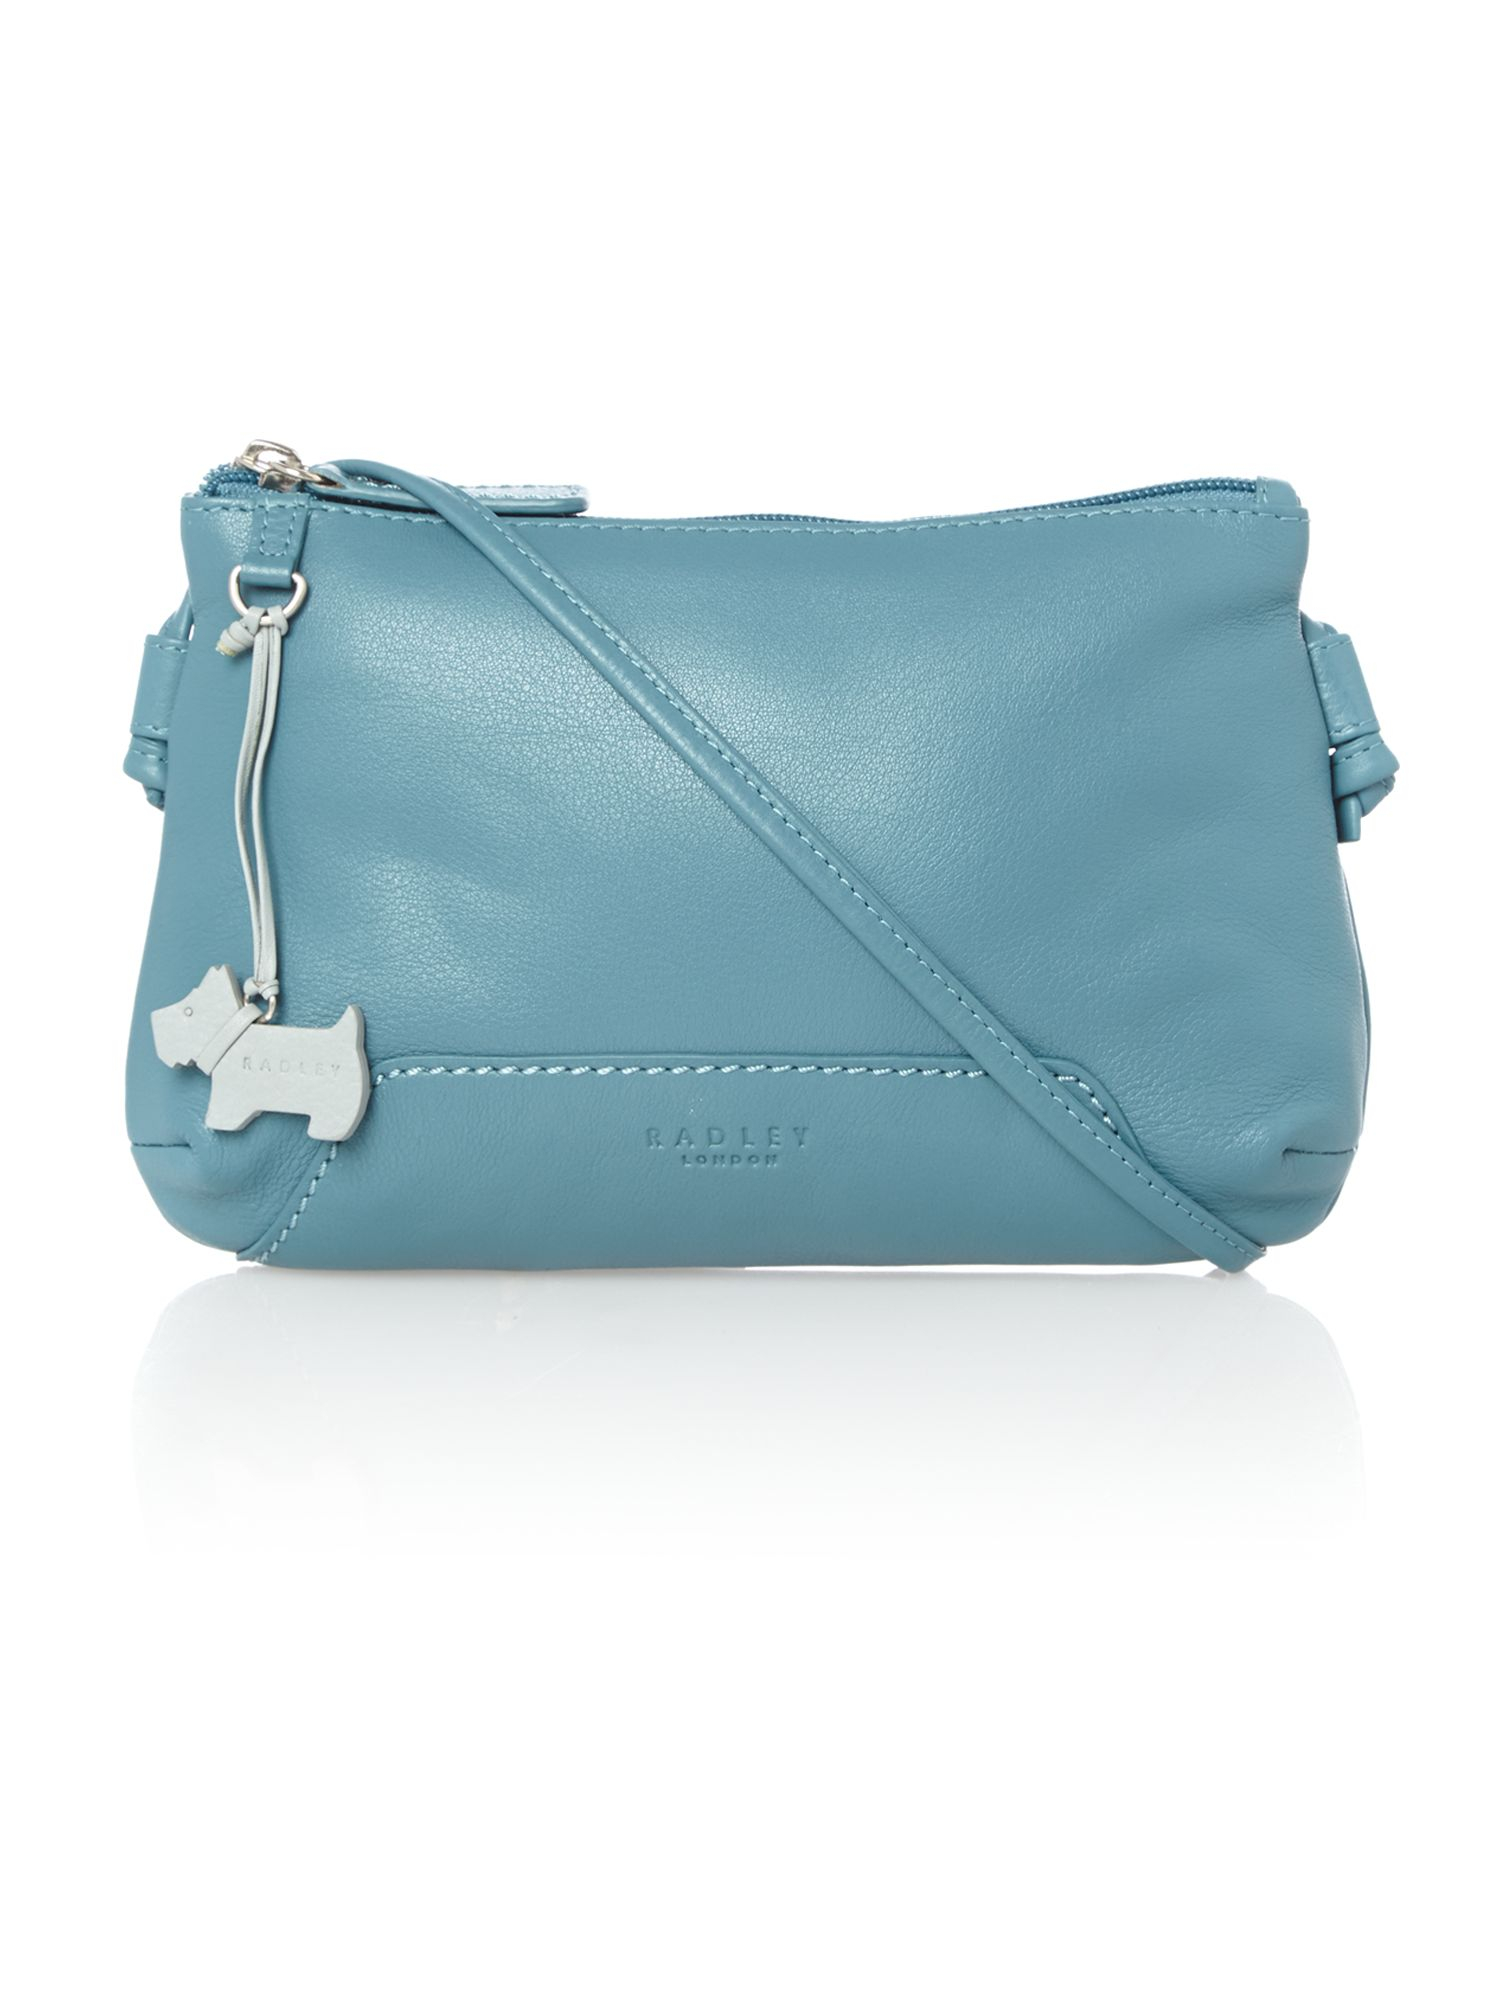 Radley Finsbury Small Ziptop Xbody Blue Leather Bag in Blue